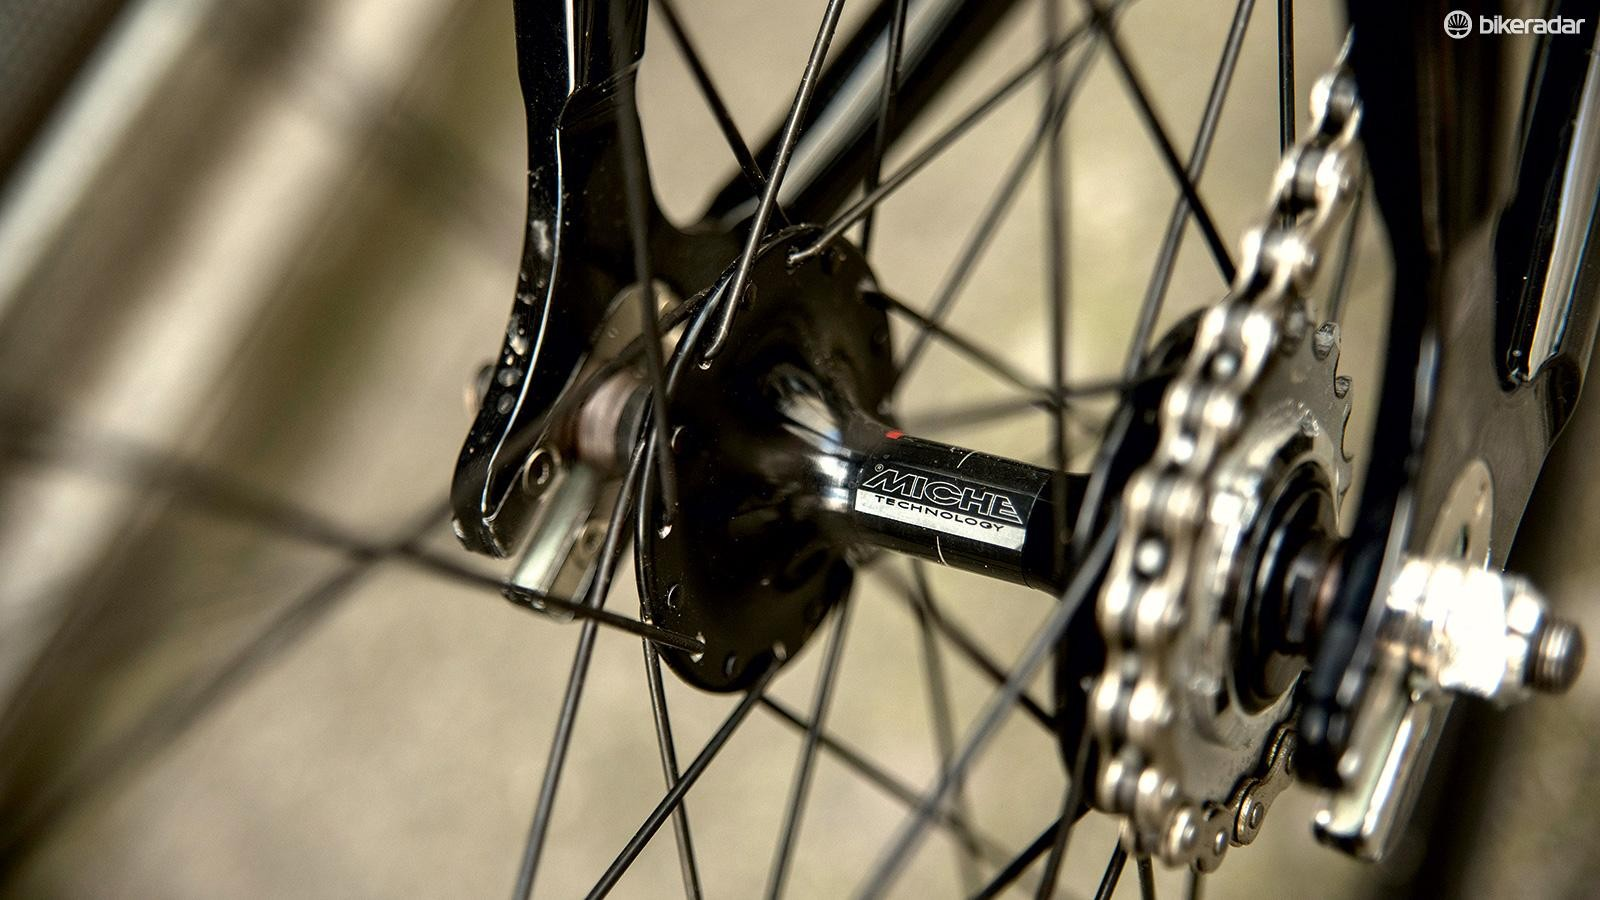 The Miche Xpress wheelset feels surprising stiff and strong